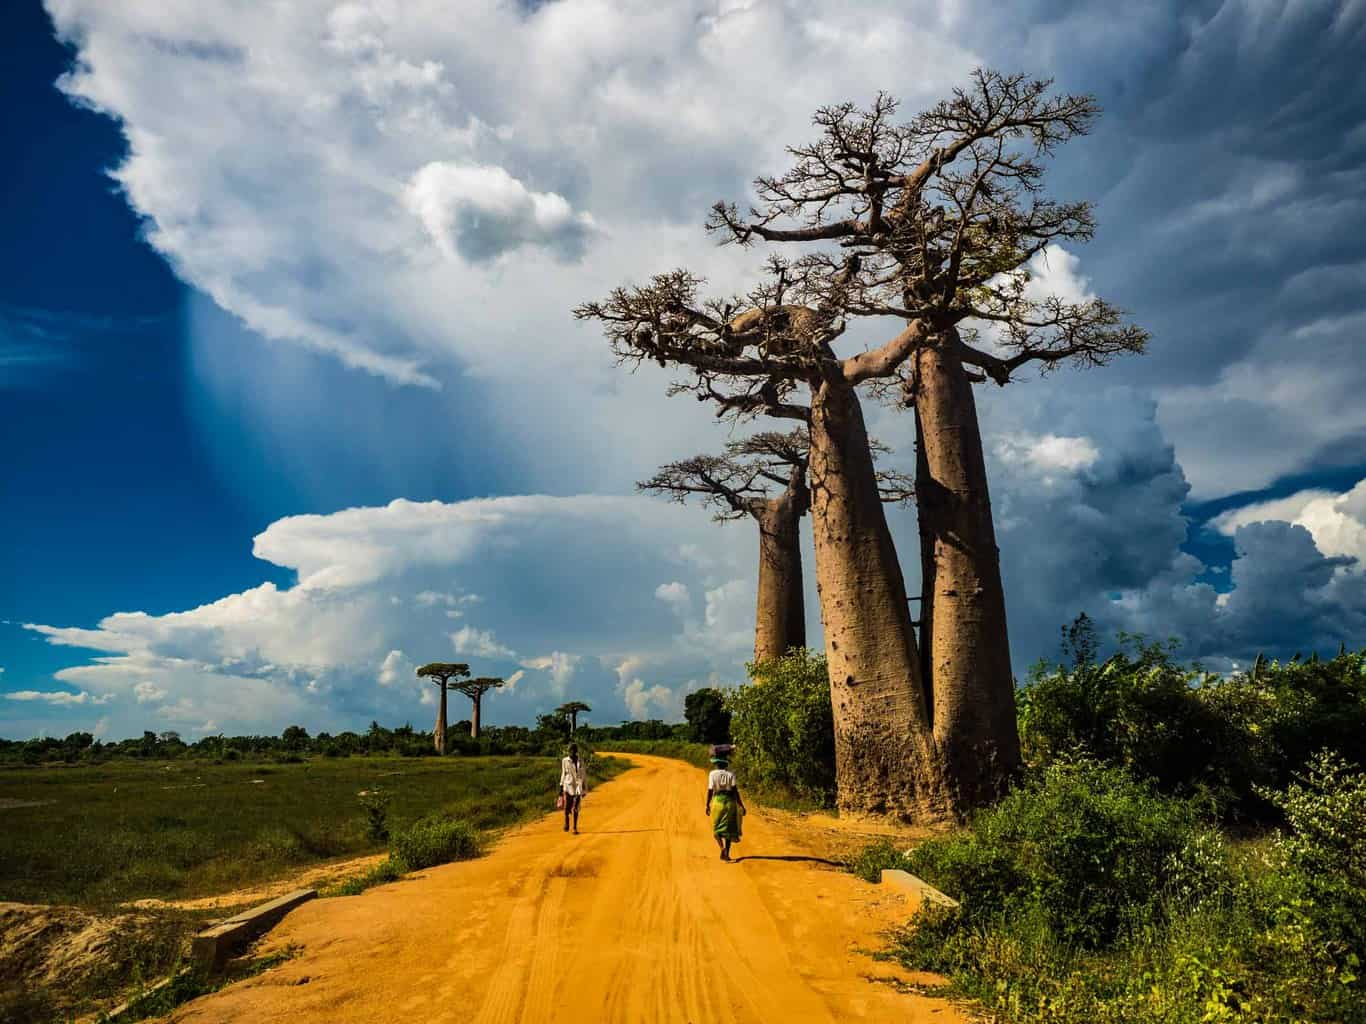 One of the first view you will get of Baobabs trees, these ones are called the Twin baobabs in Madagascar